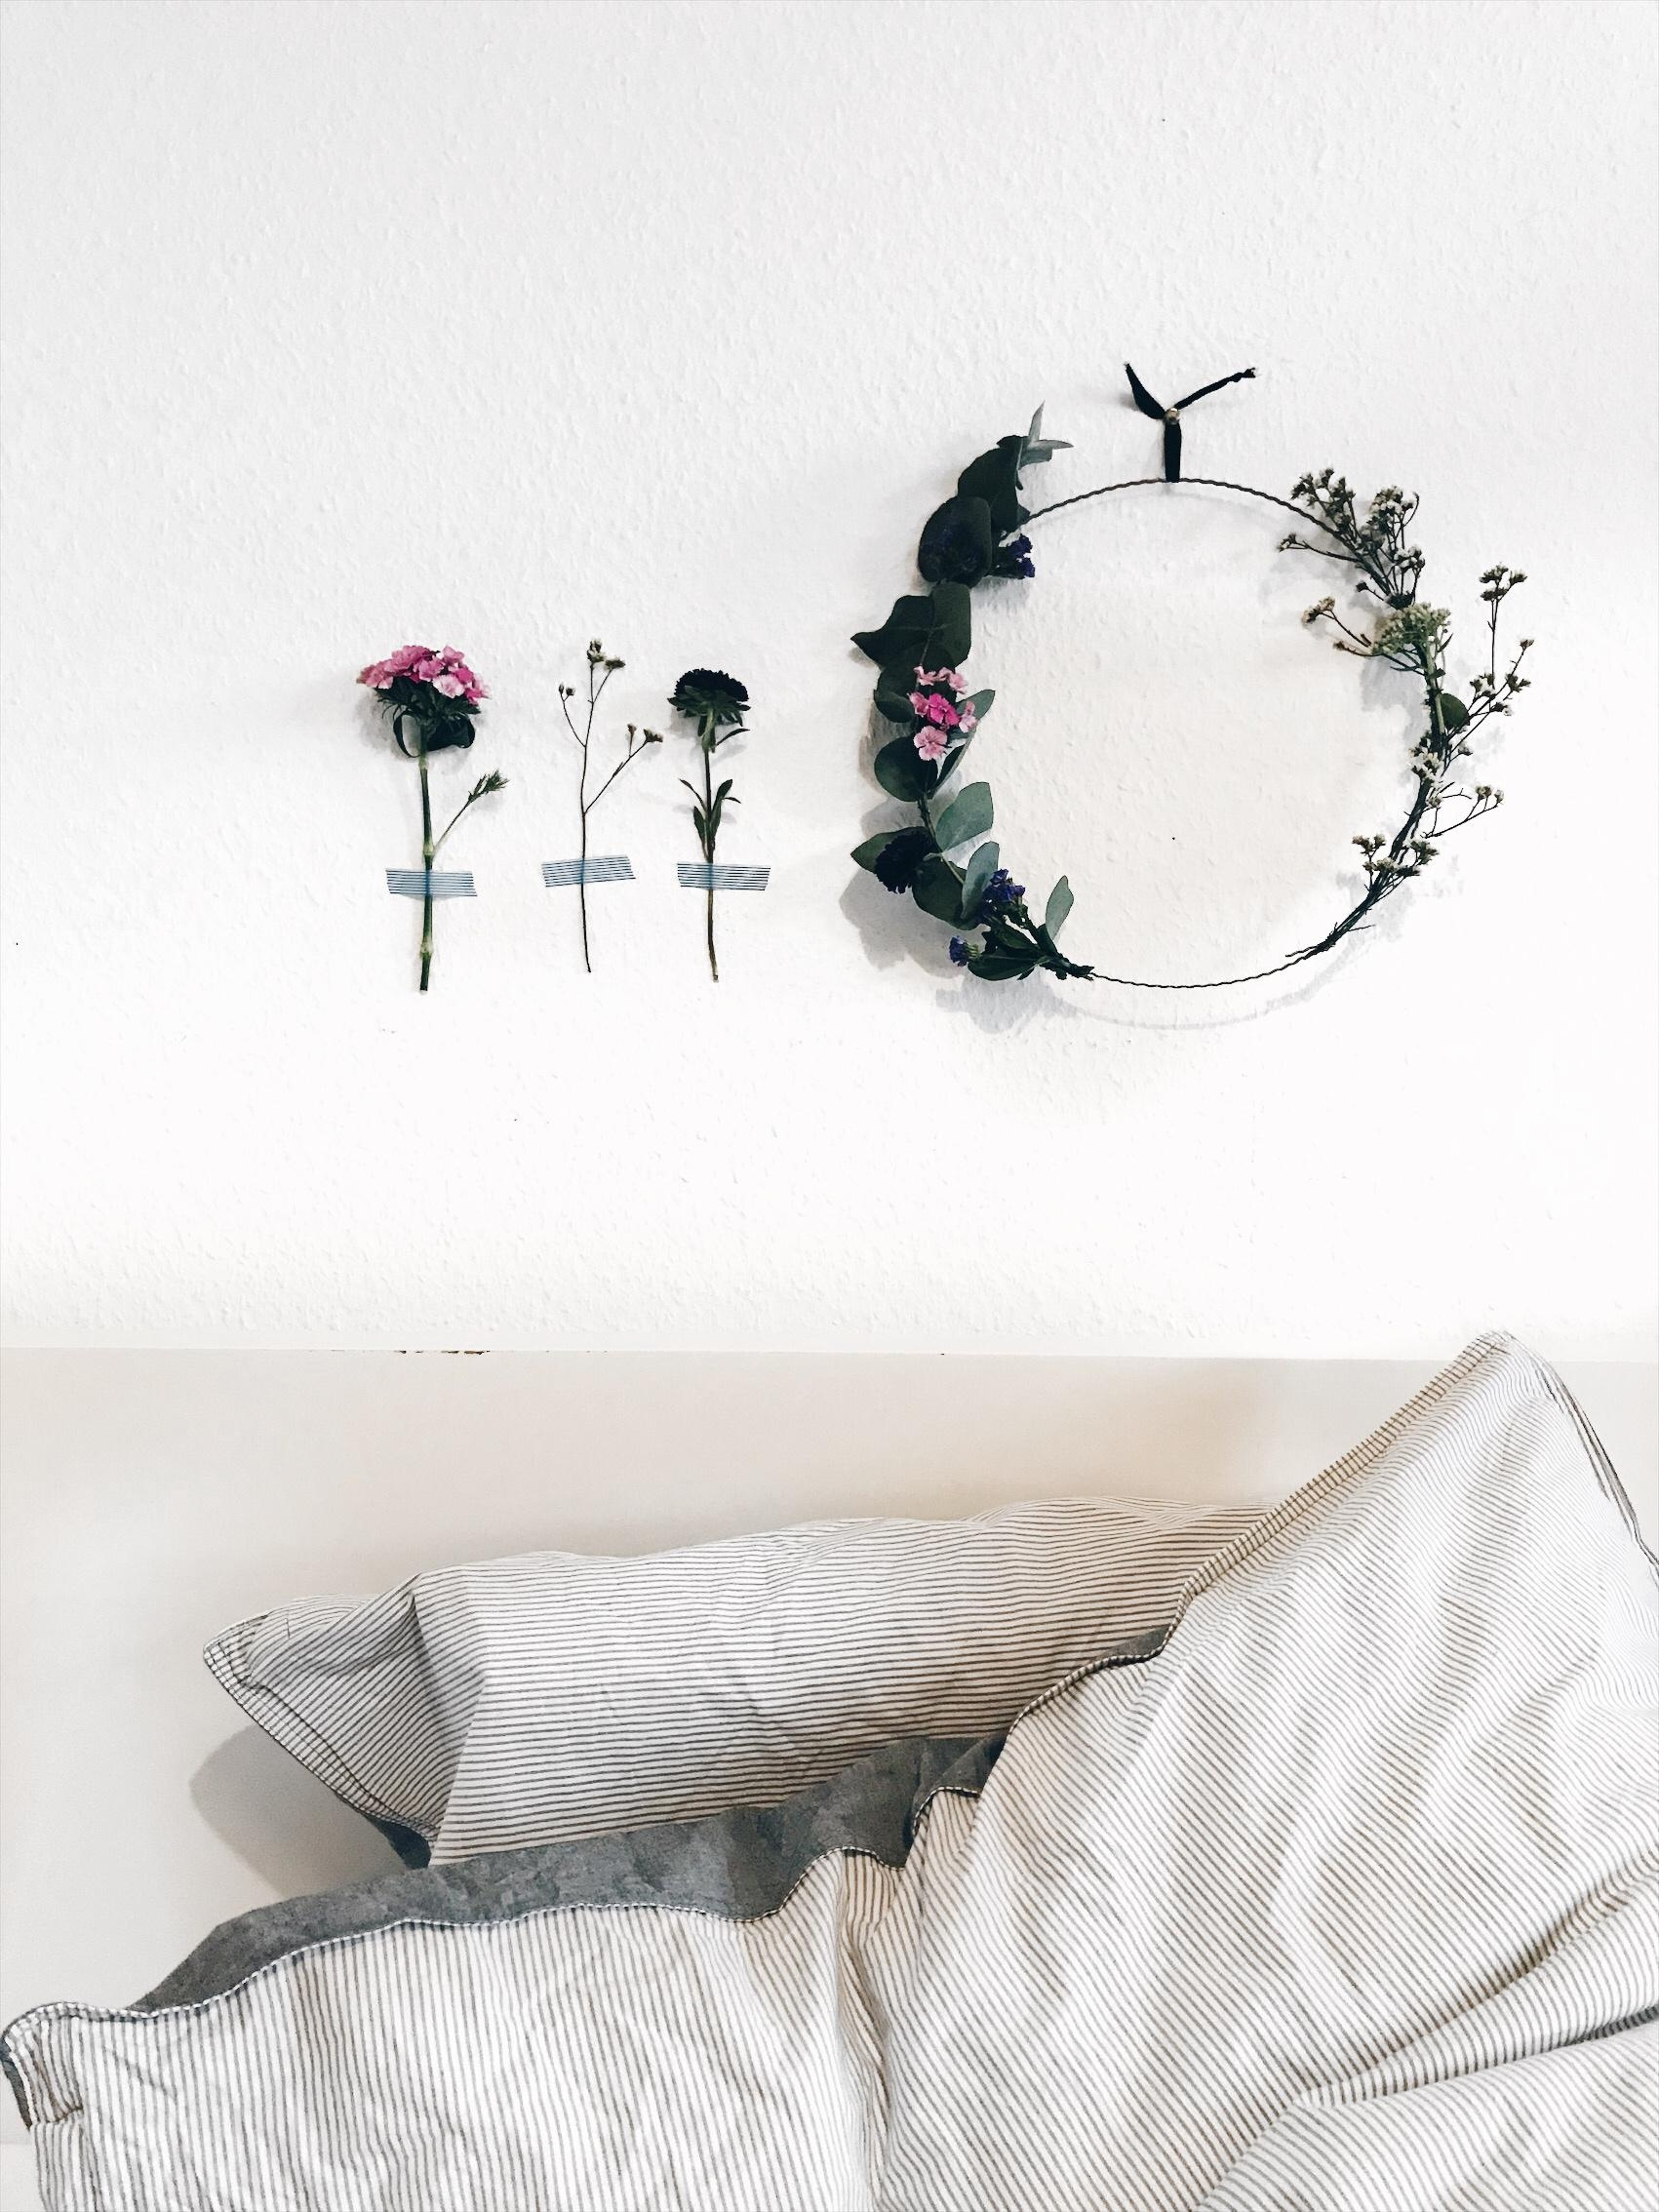 #Happyplace #bedroom #cozy #living #home #couchliebt #minimalism #flowers #couchstyle #home #interior